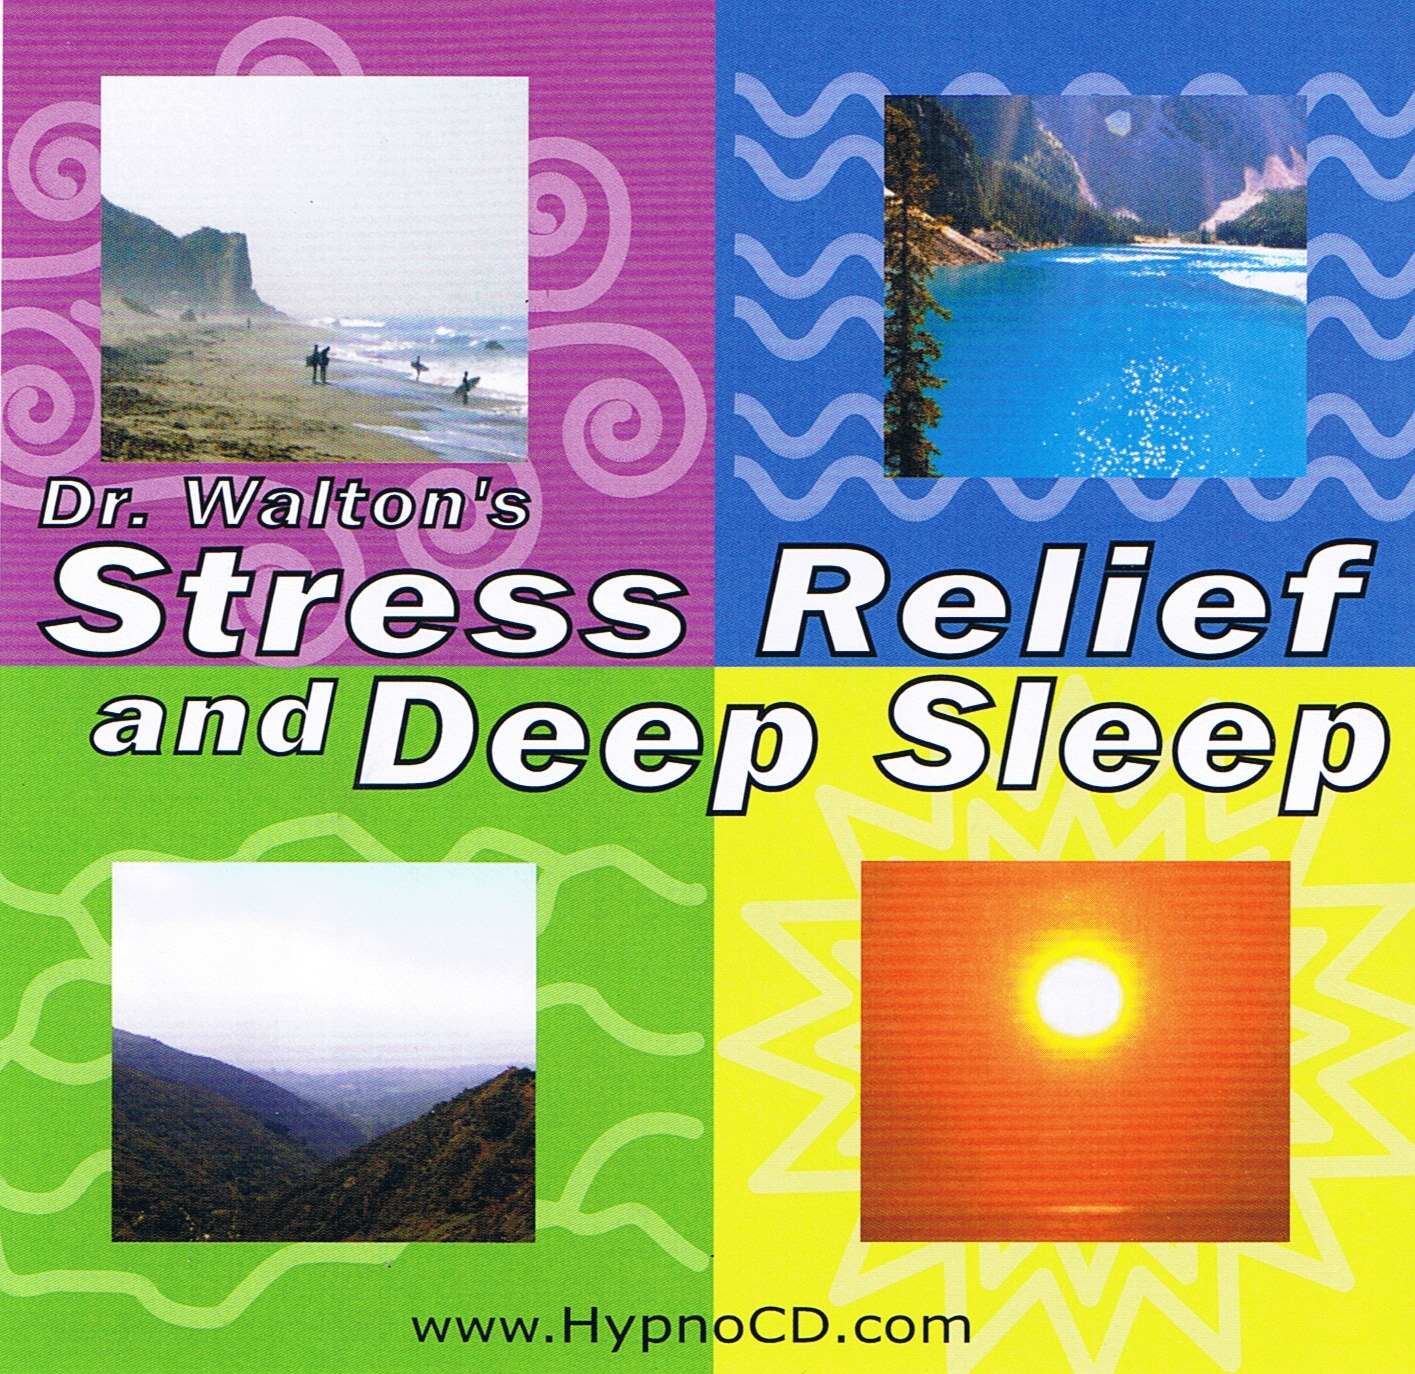 Dr. Walton's Stress Relief And Deep Sleep [DD]